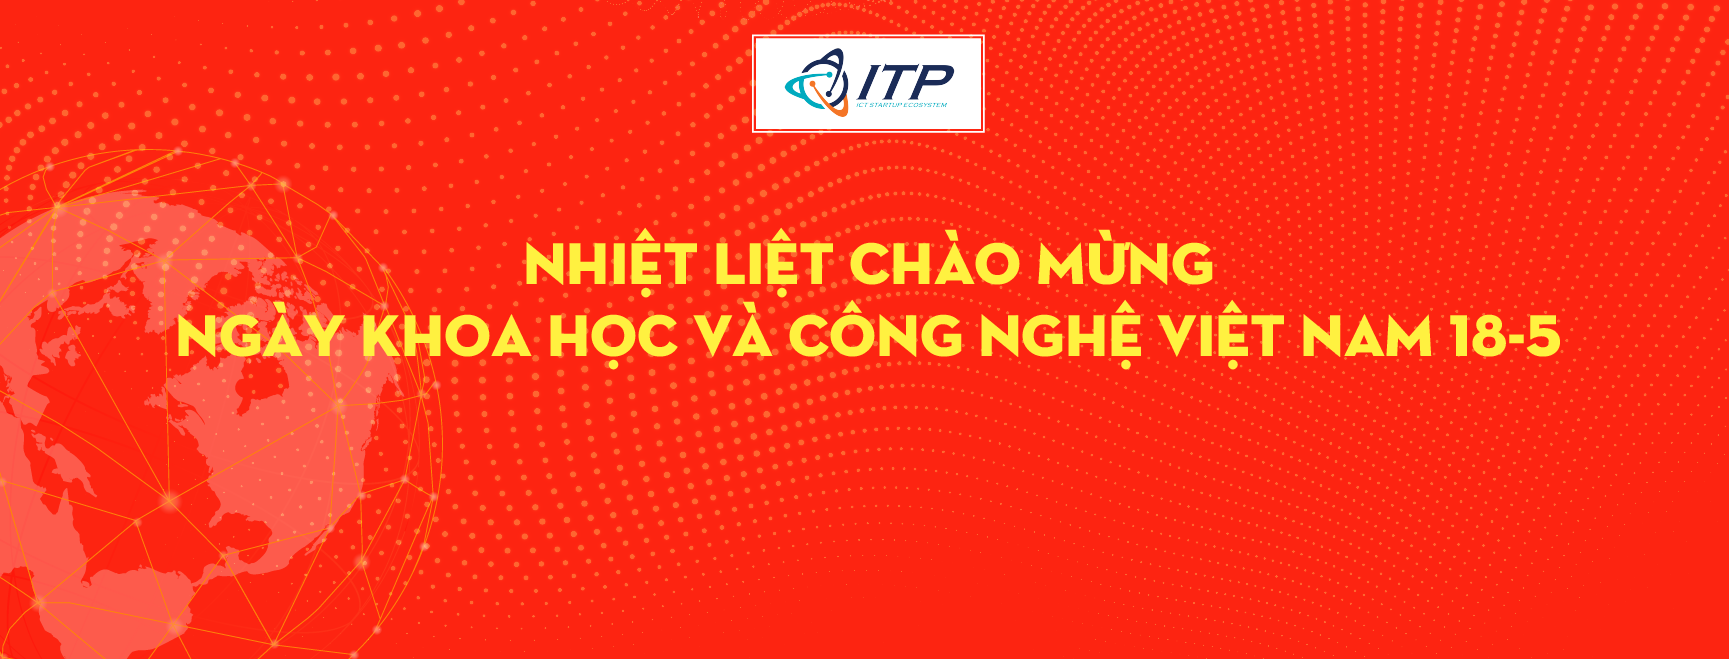 ITP nhiet liet chao mung ngay khoa hoc cong nghe VN Recovered 04